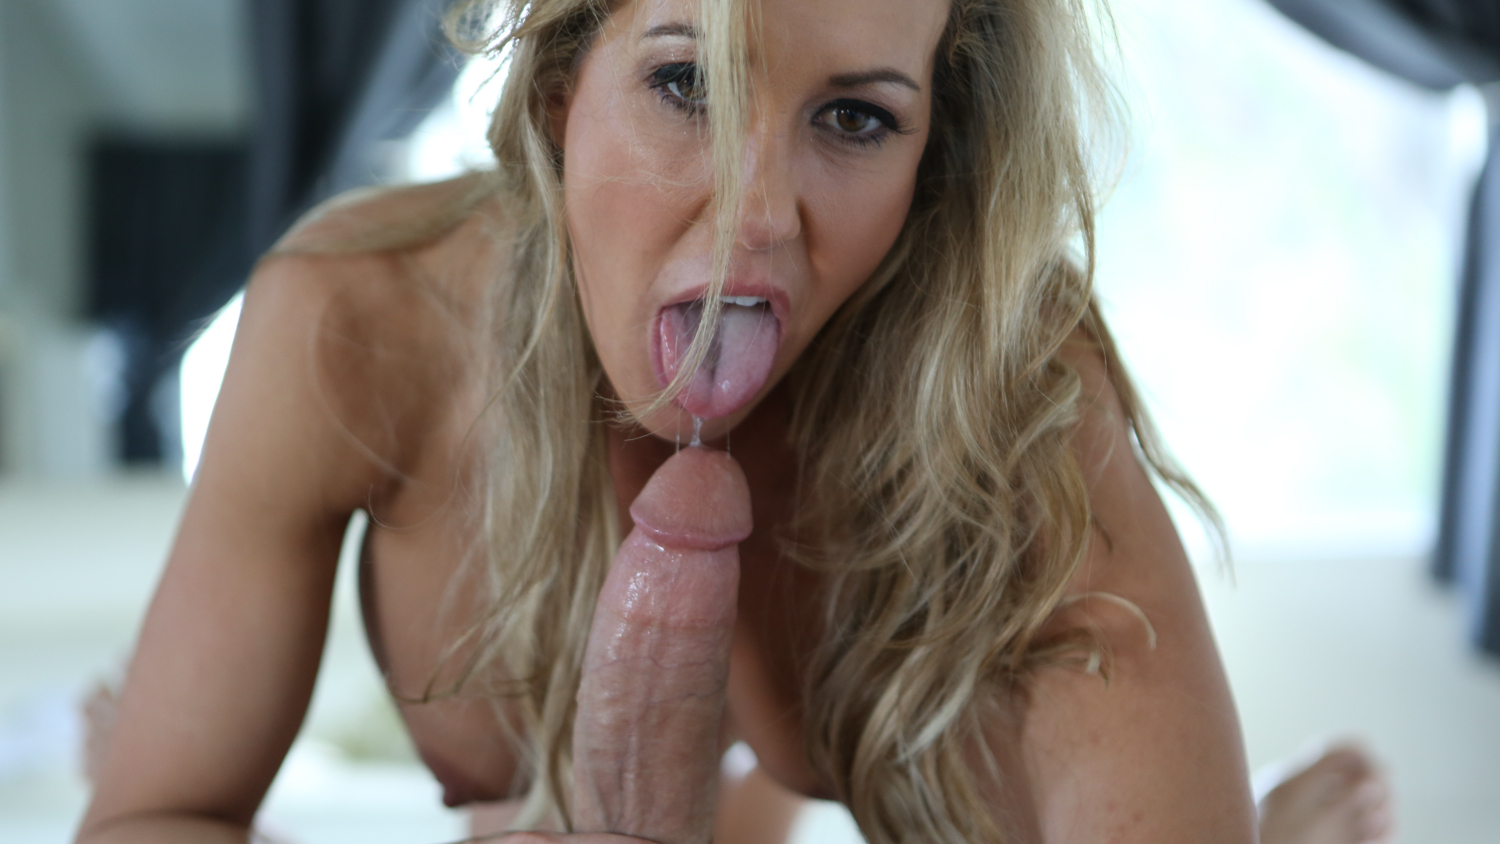 Mature pleasure brandi love think, that